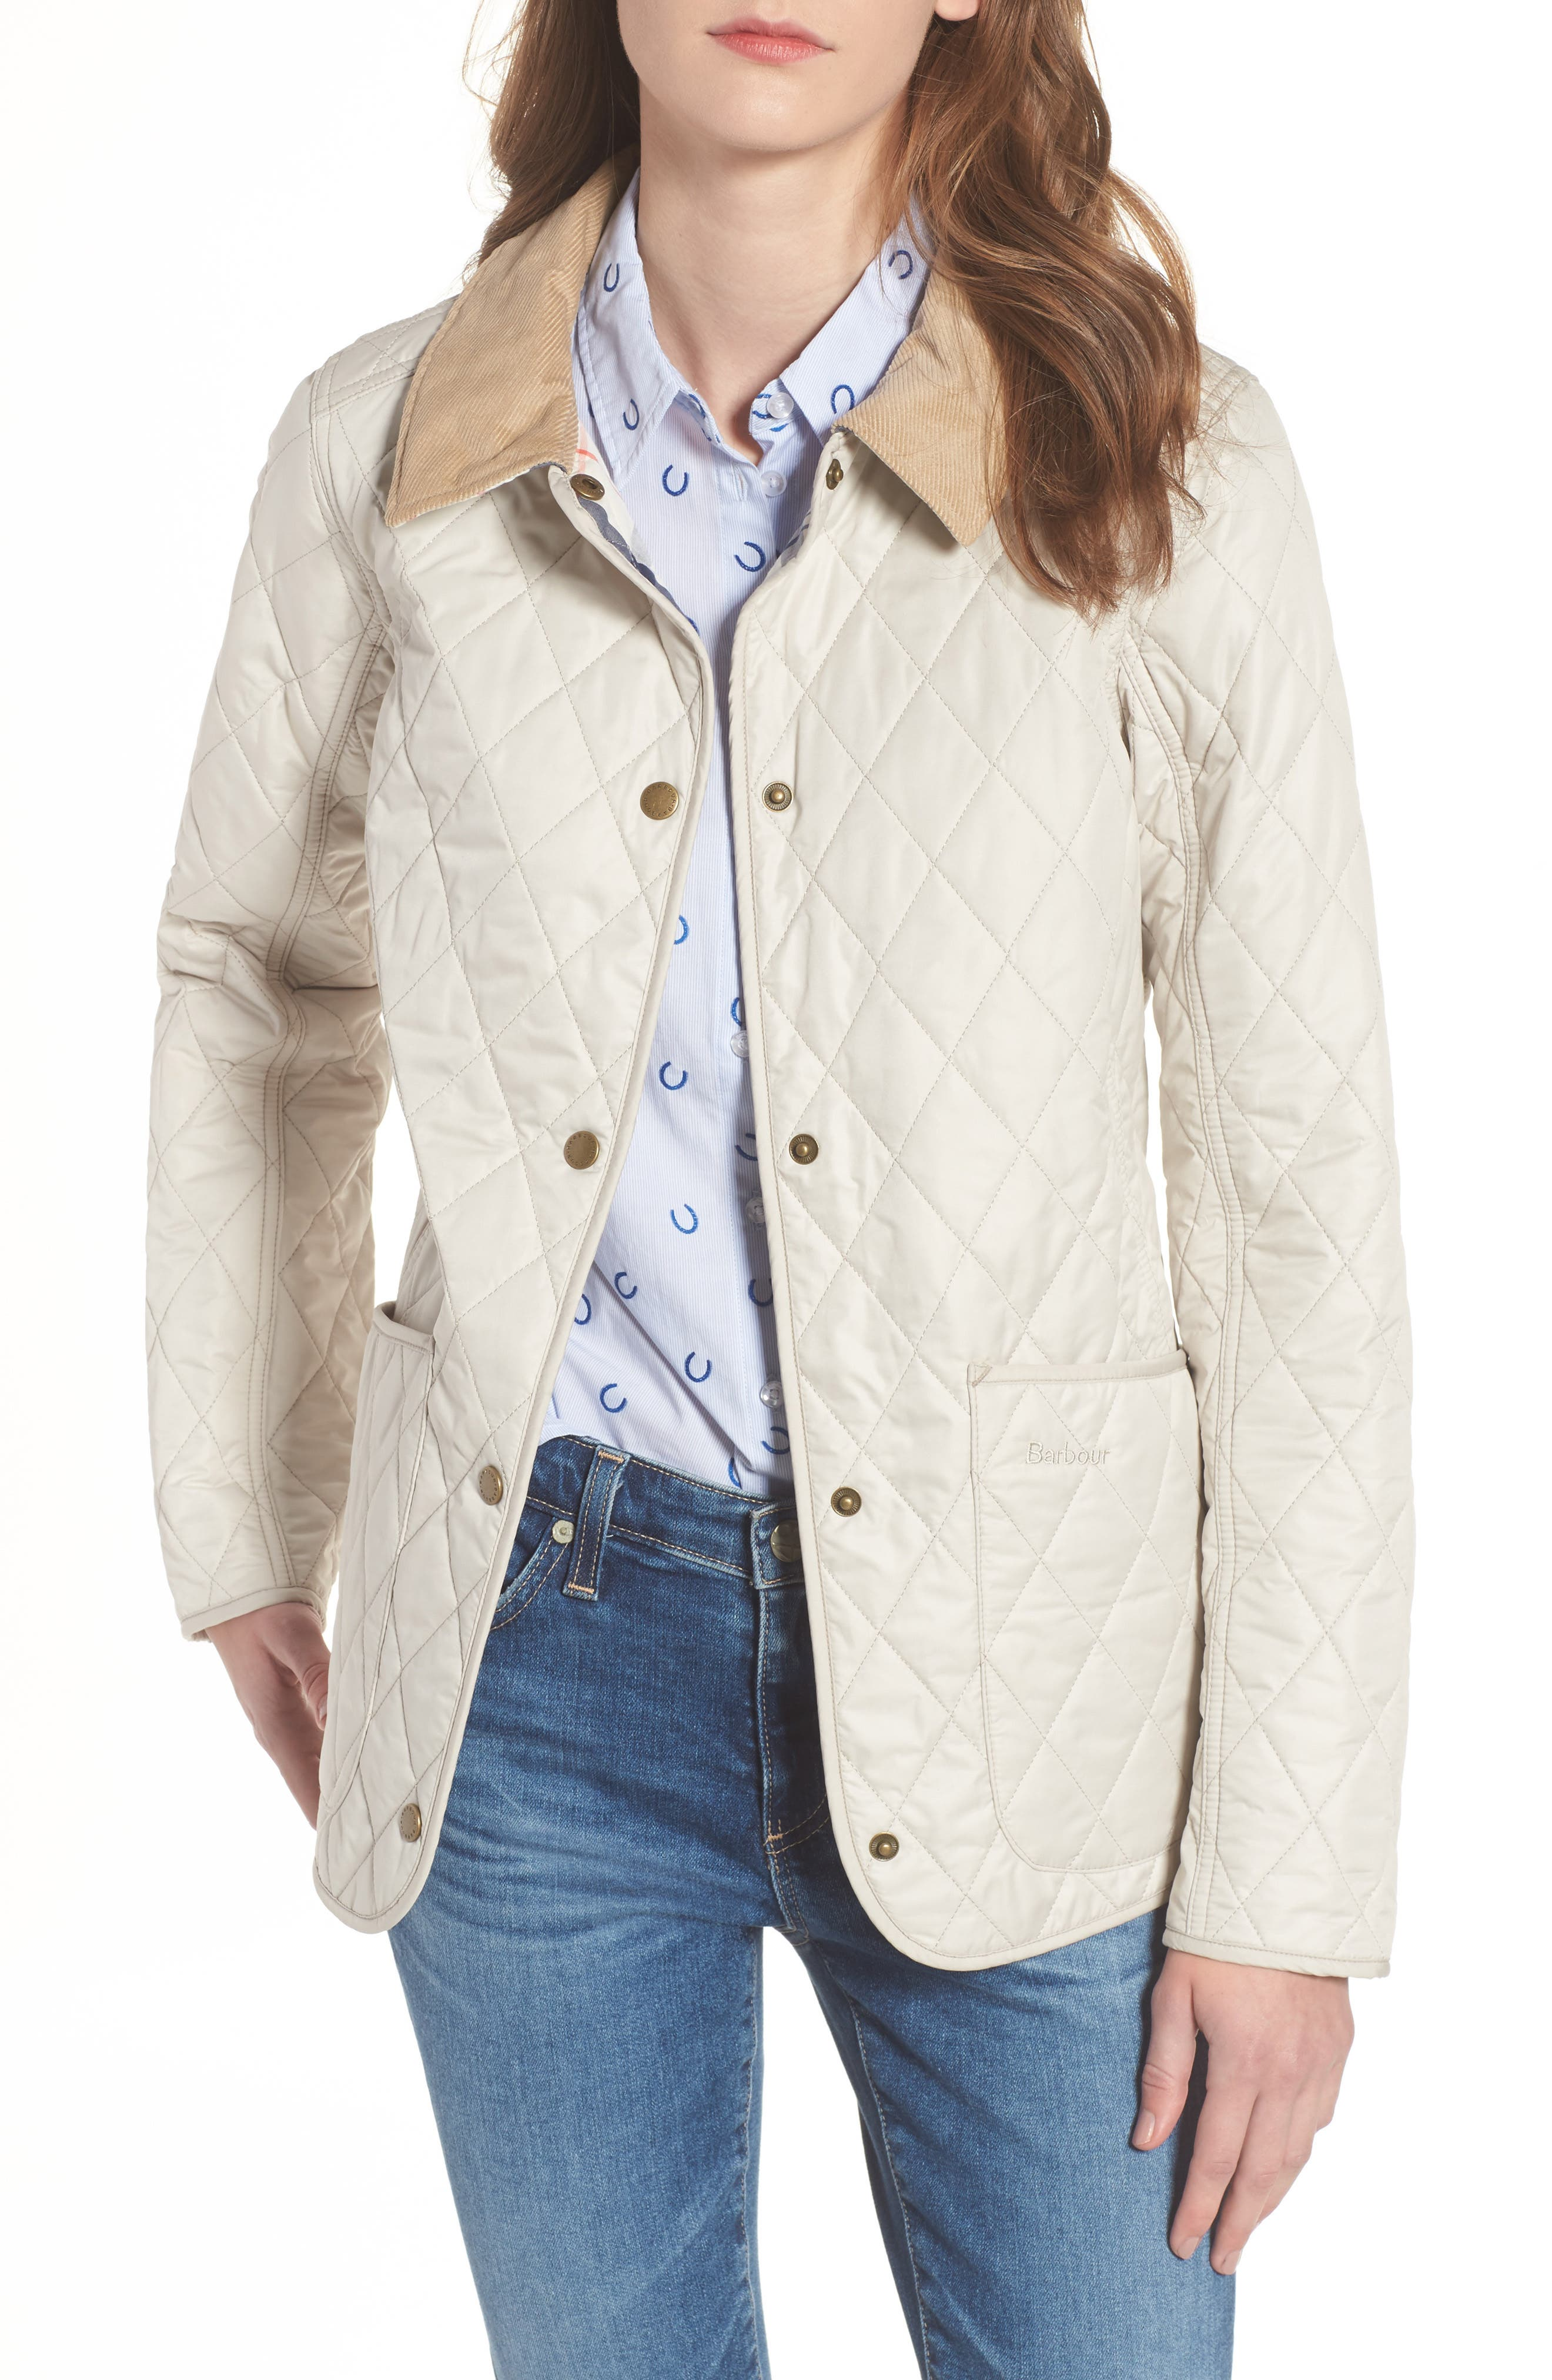 BARBOUR, Spring Annandale Quilted Jacket, Main thumbnail 1, color, 270